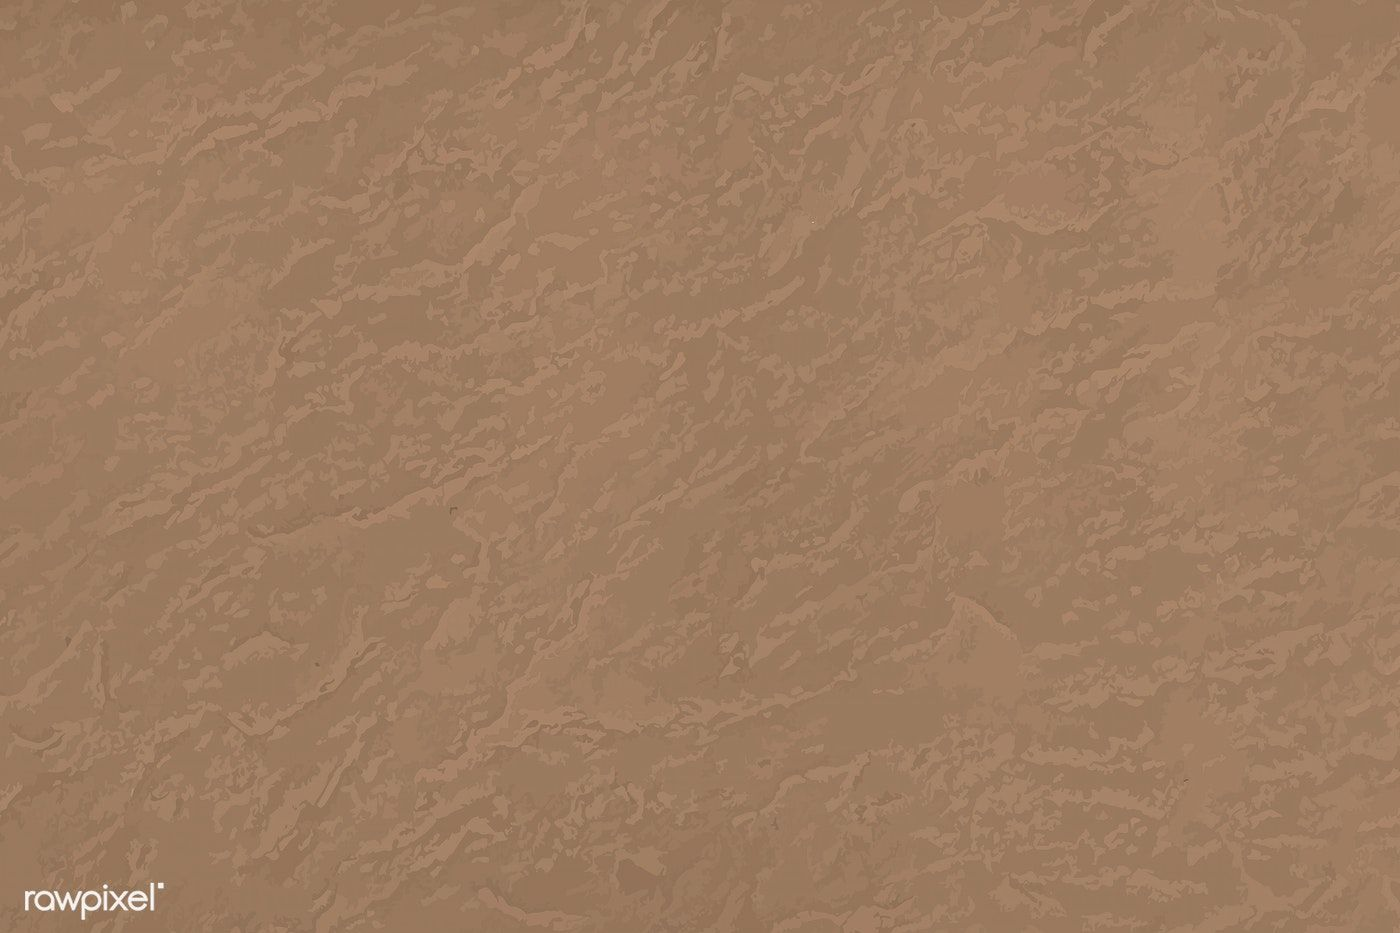 Brown Paper Textured Background Vector Free Image By Rawpixel